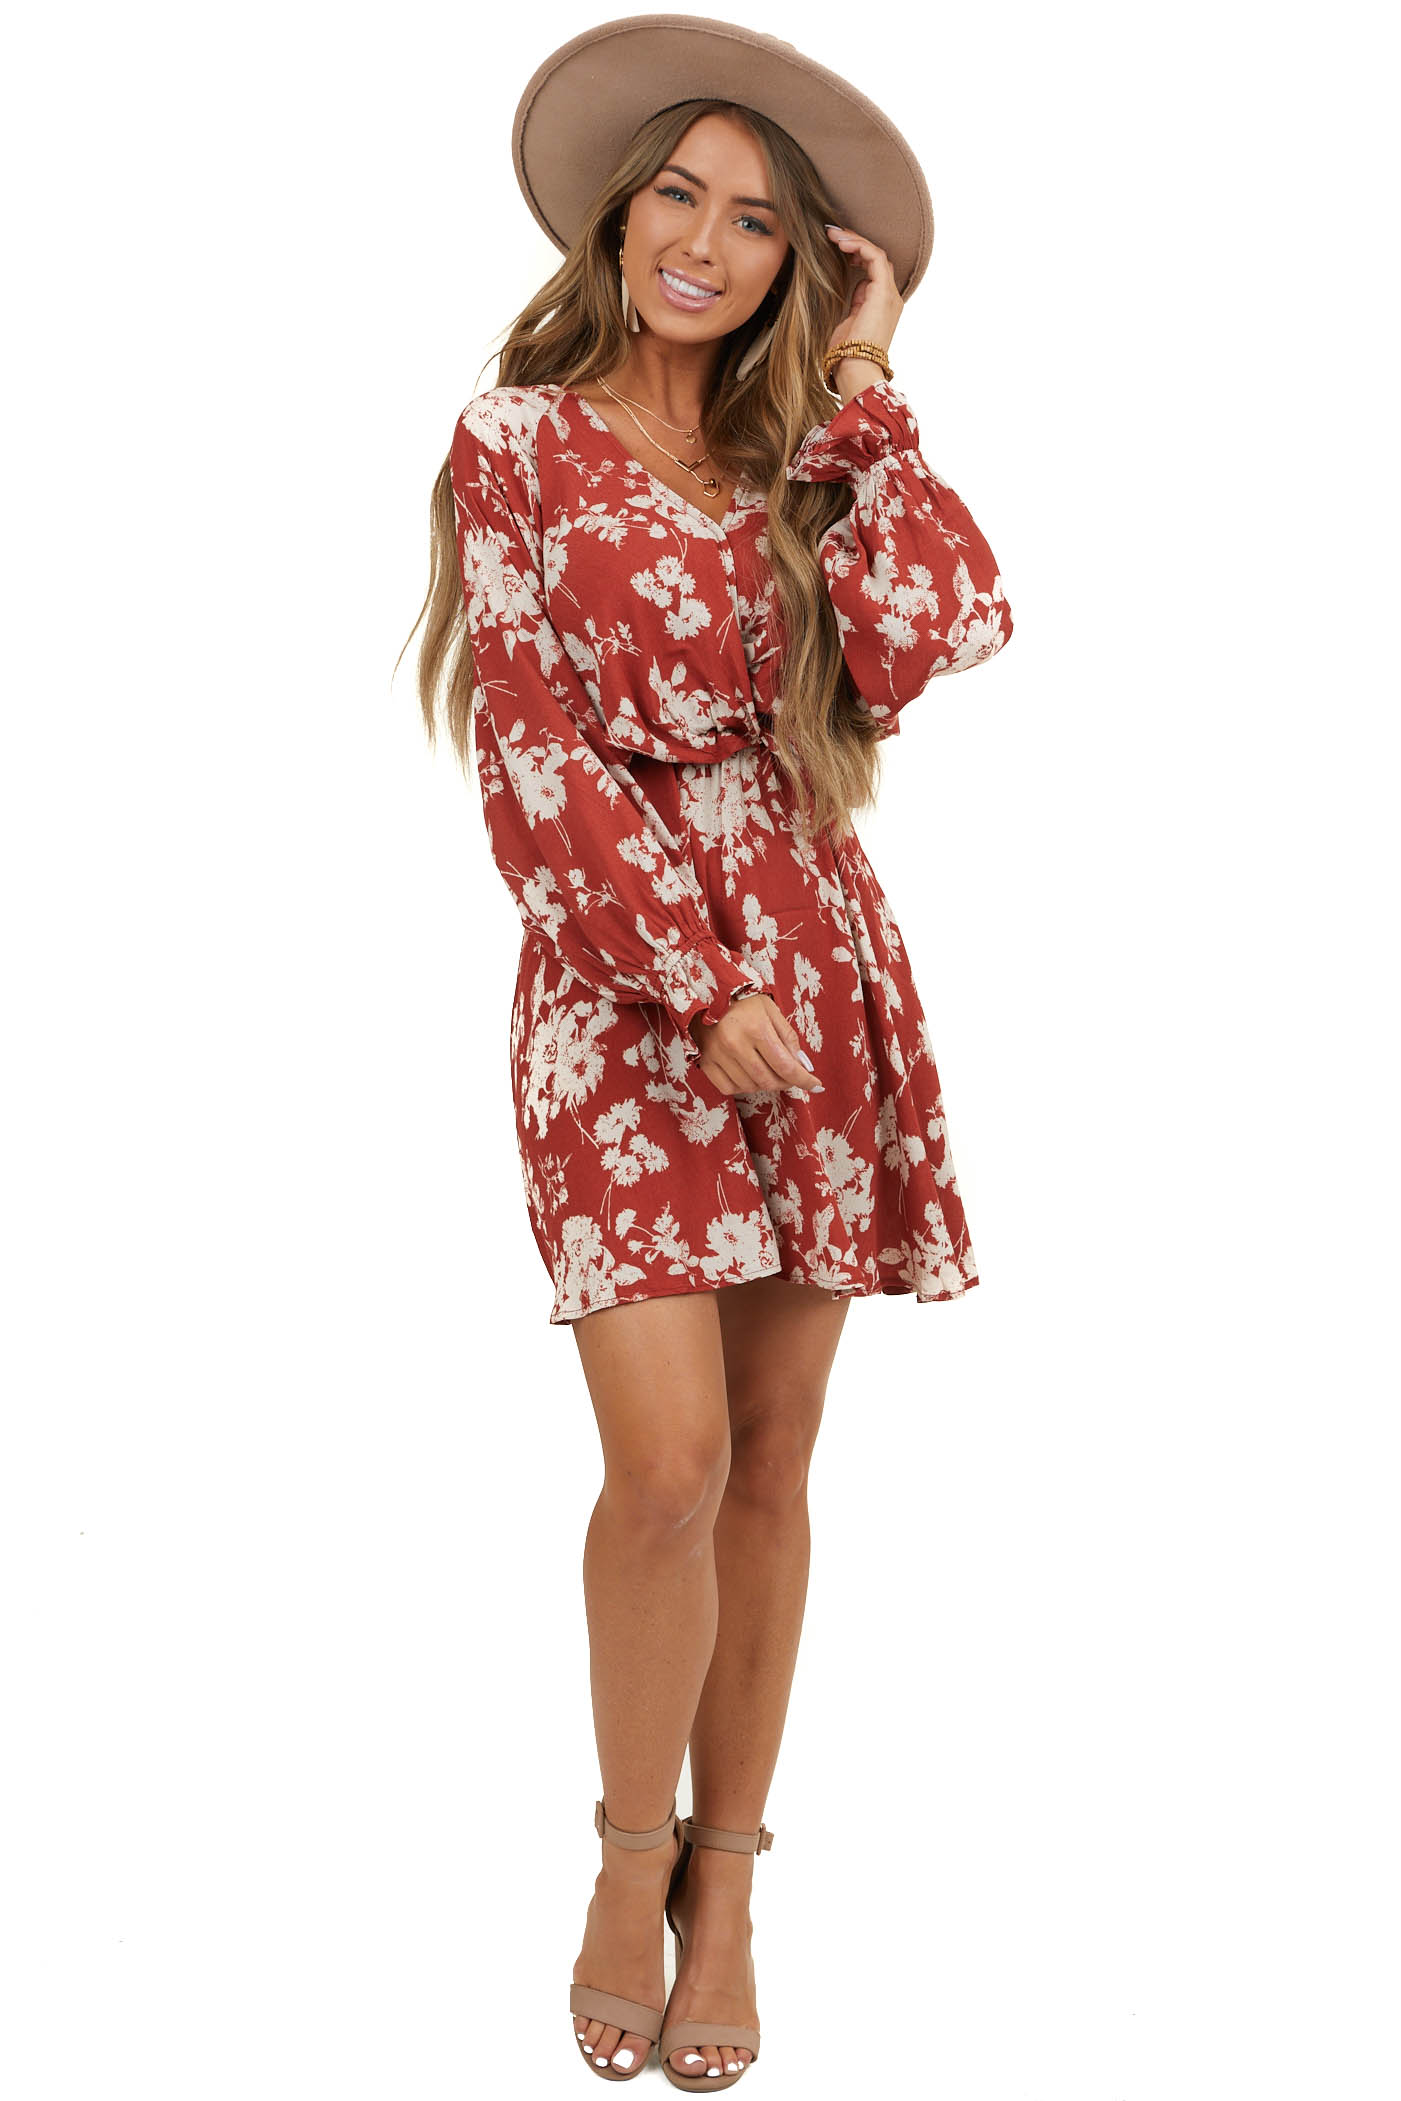 Brick Floral Print Woven Surplice Dress with Long Sleeves